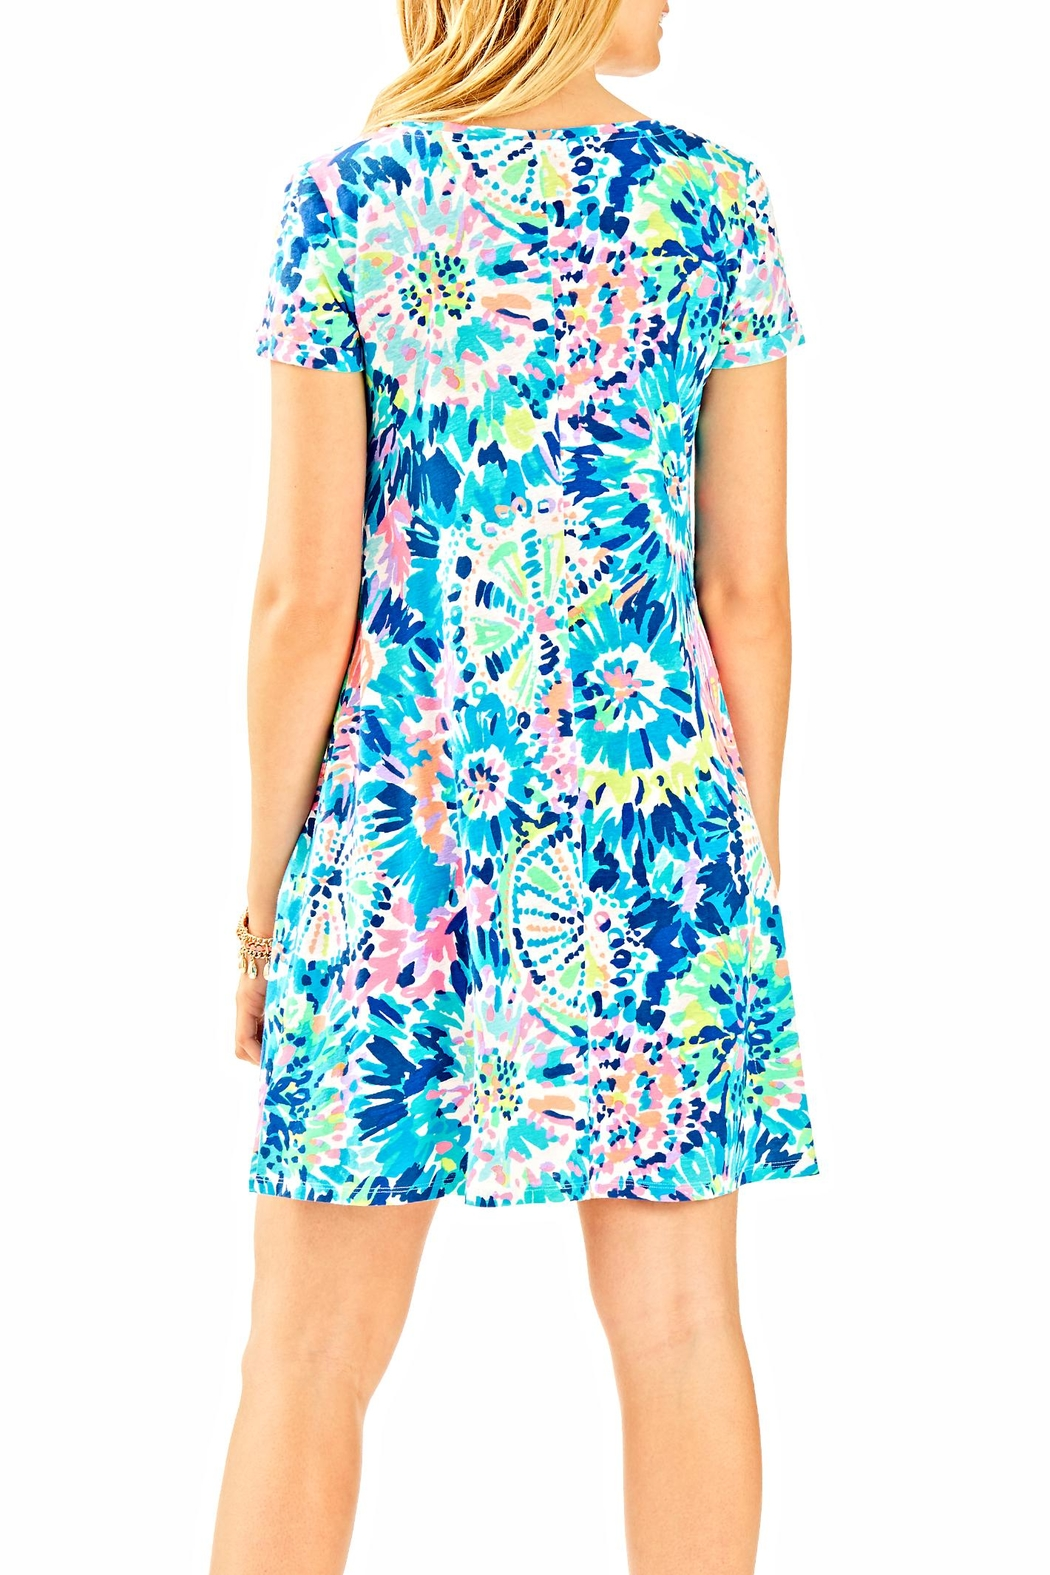 Lilly Pulitzer Jessica Short Sleeve Dress from Sandestin Golf and ...